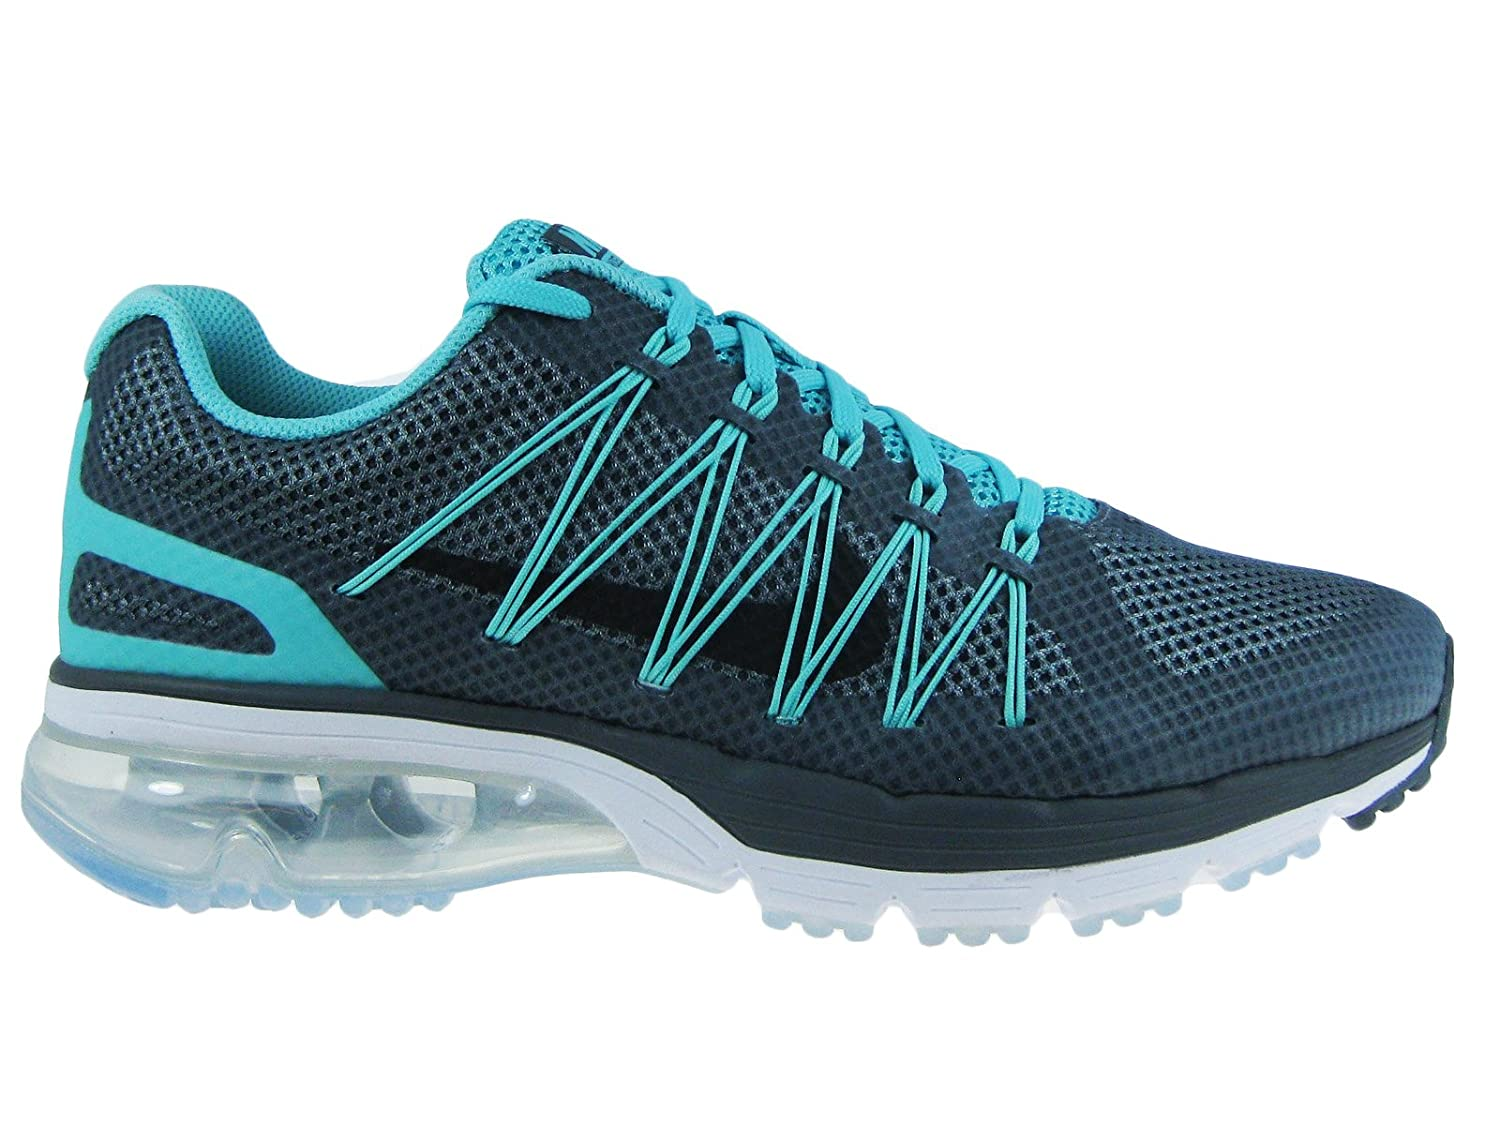 4c7524f70d Nike Women's Air Max Excellerate Cool Grey/Black/Light Aqua/White Mesh  Running Shoes 8 M US: Amazon.ca: Shoes & Handbags